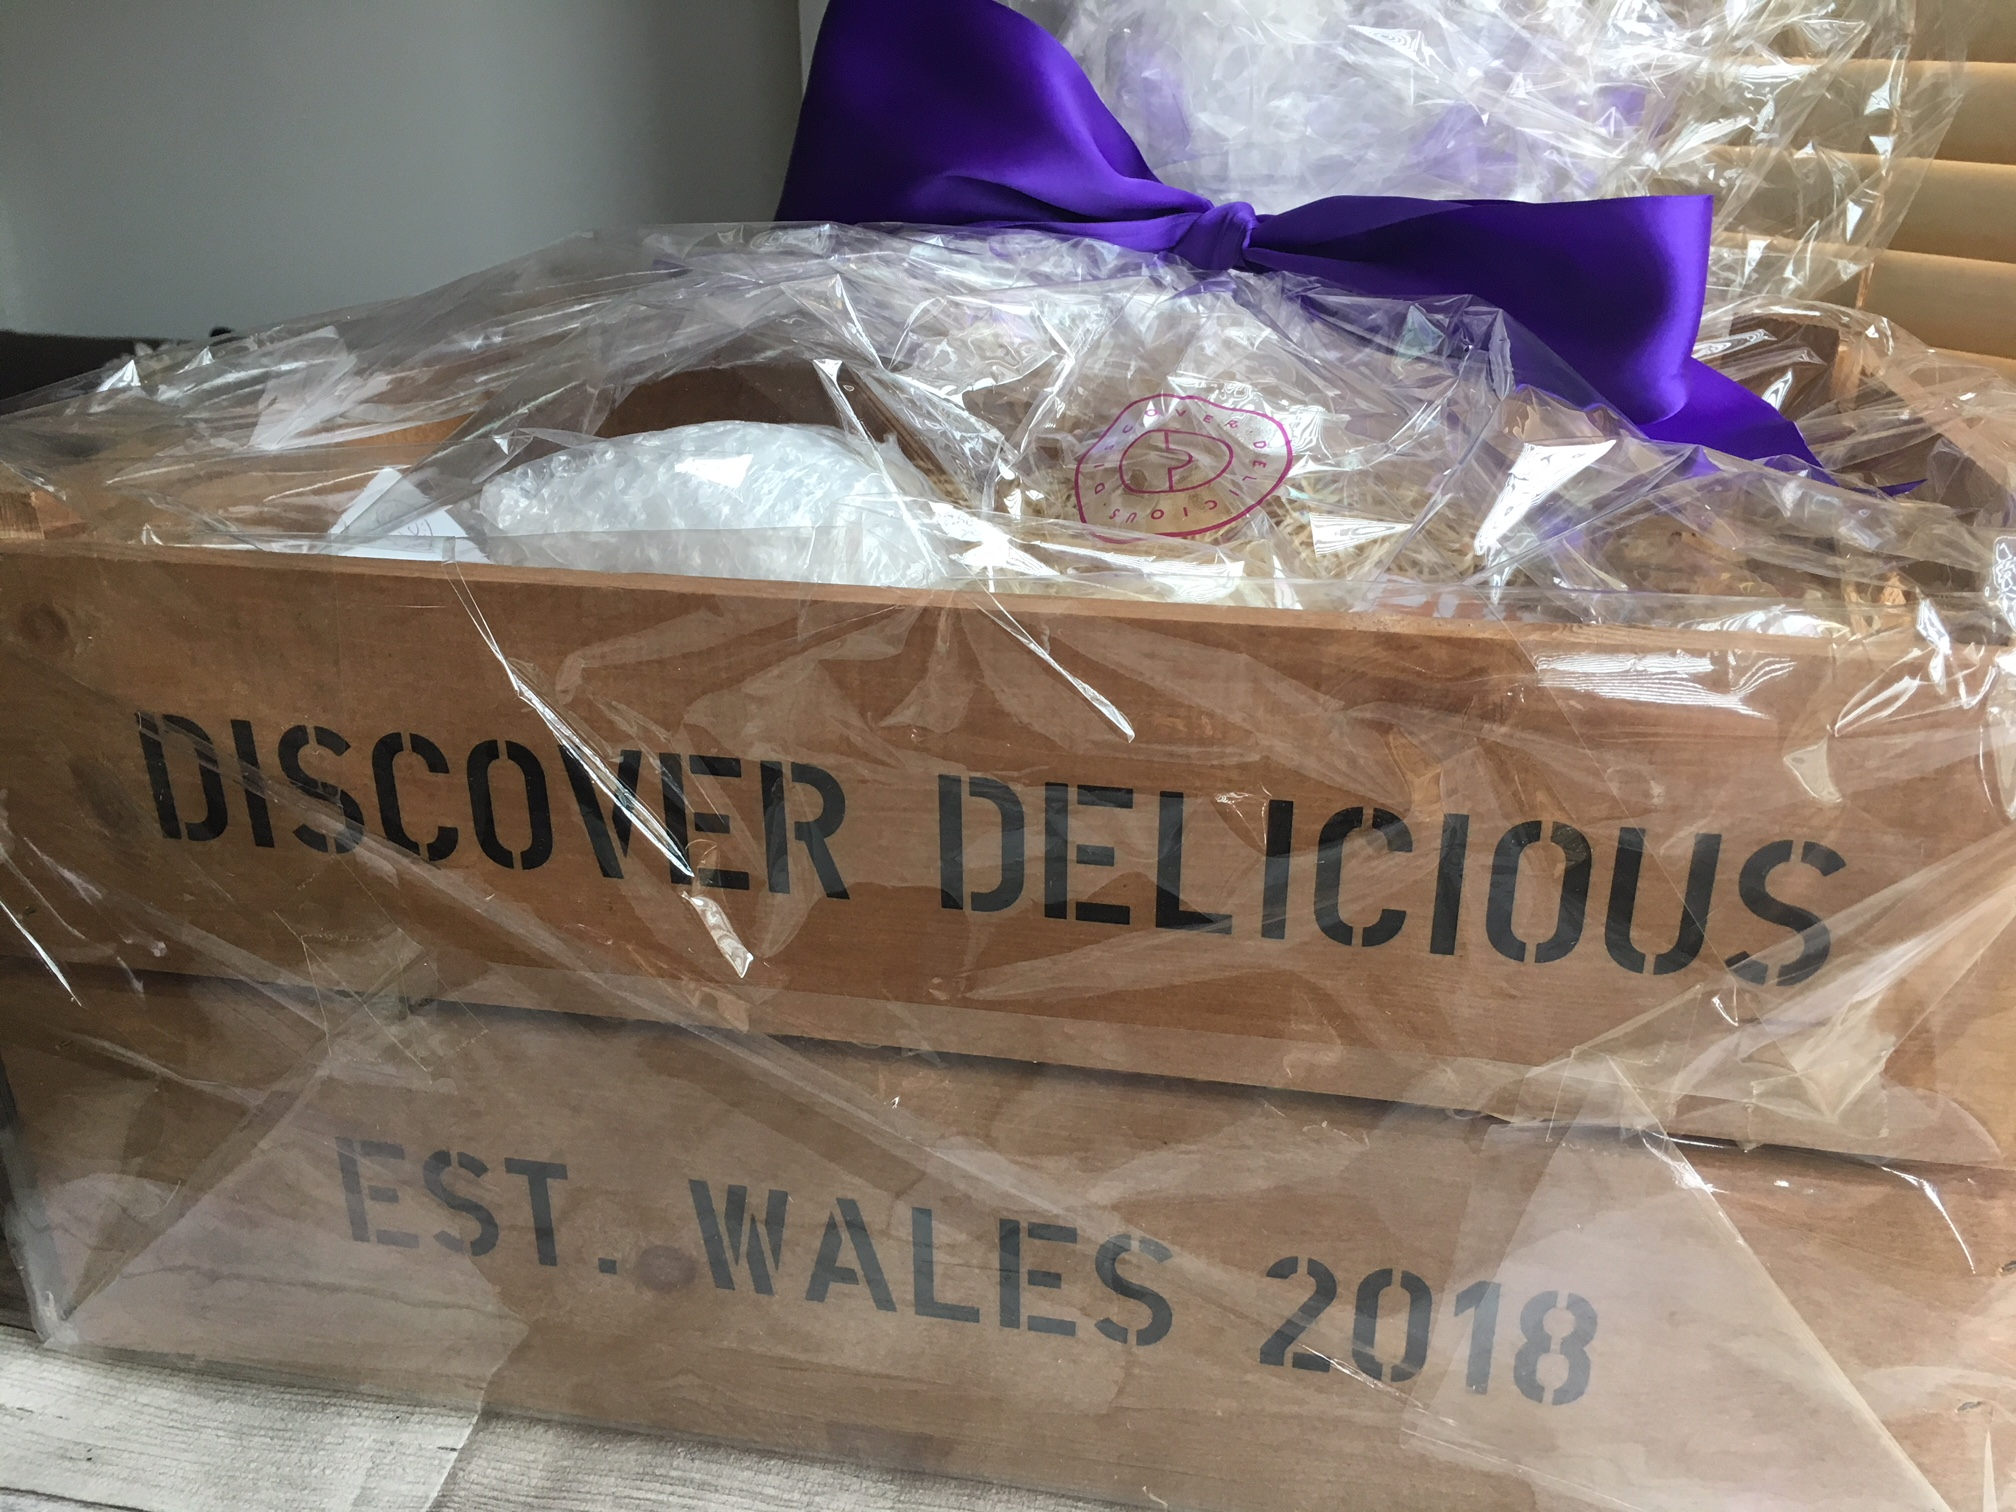 A wrapped hamper from Discover Delicious Wales - a wooden crate wrapped in cellophane and tied with a purple ribbon bow